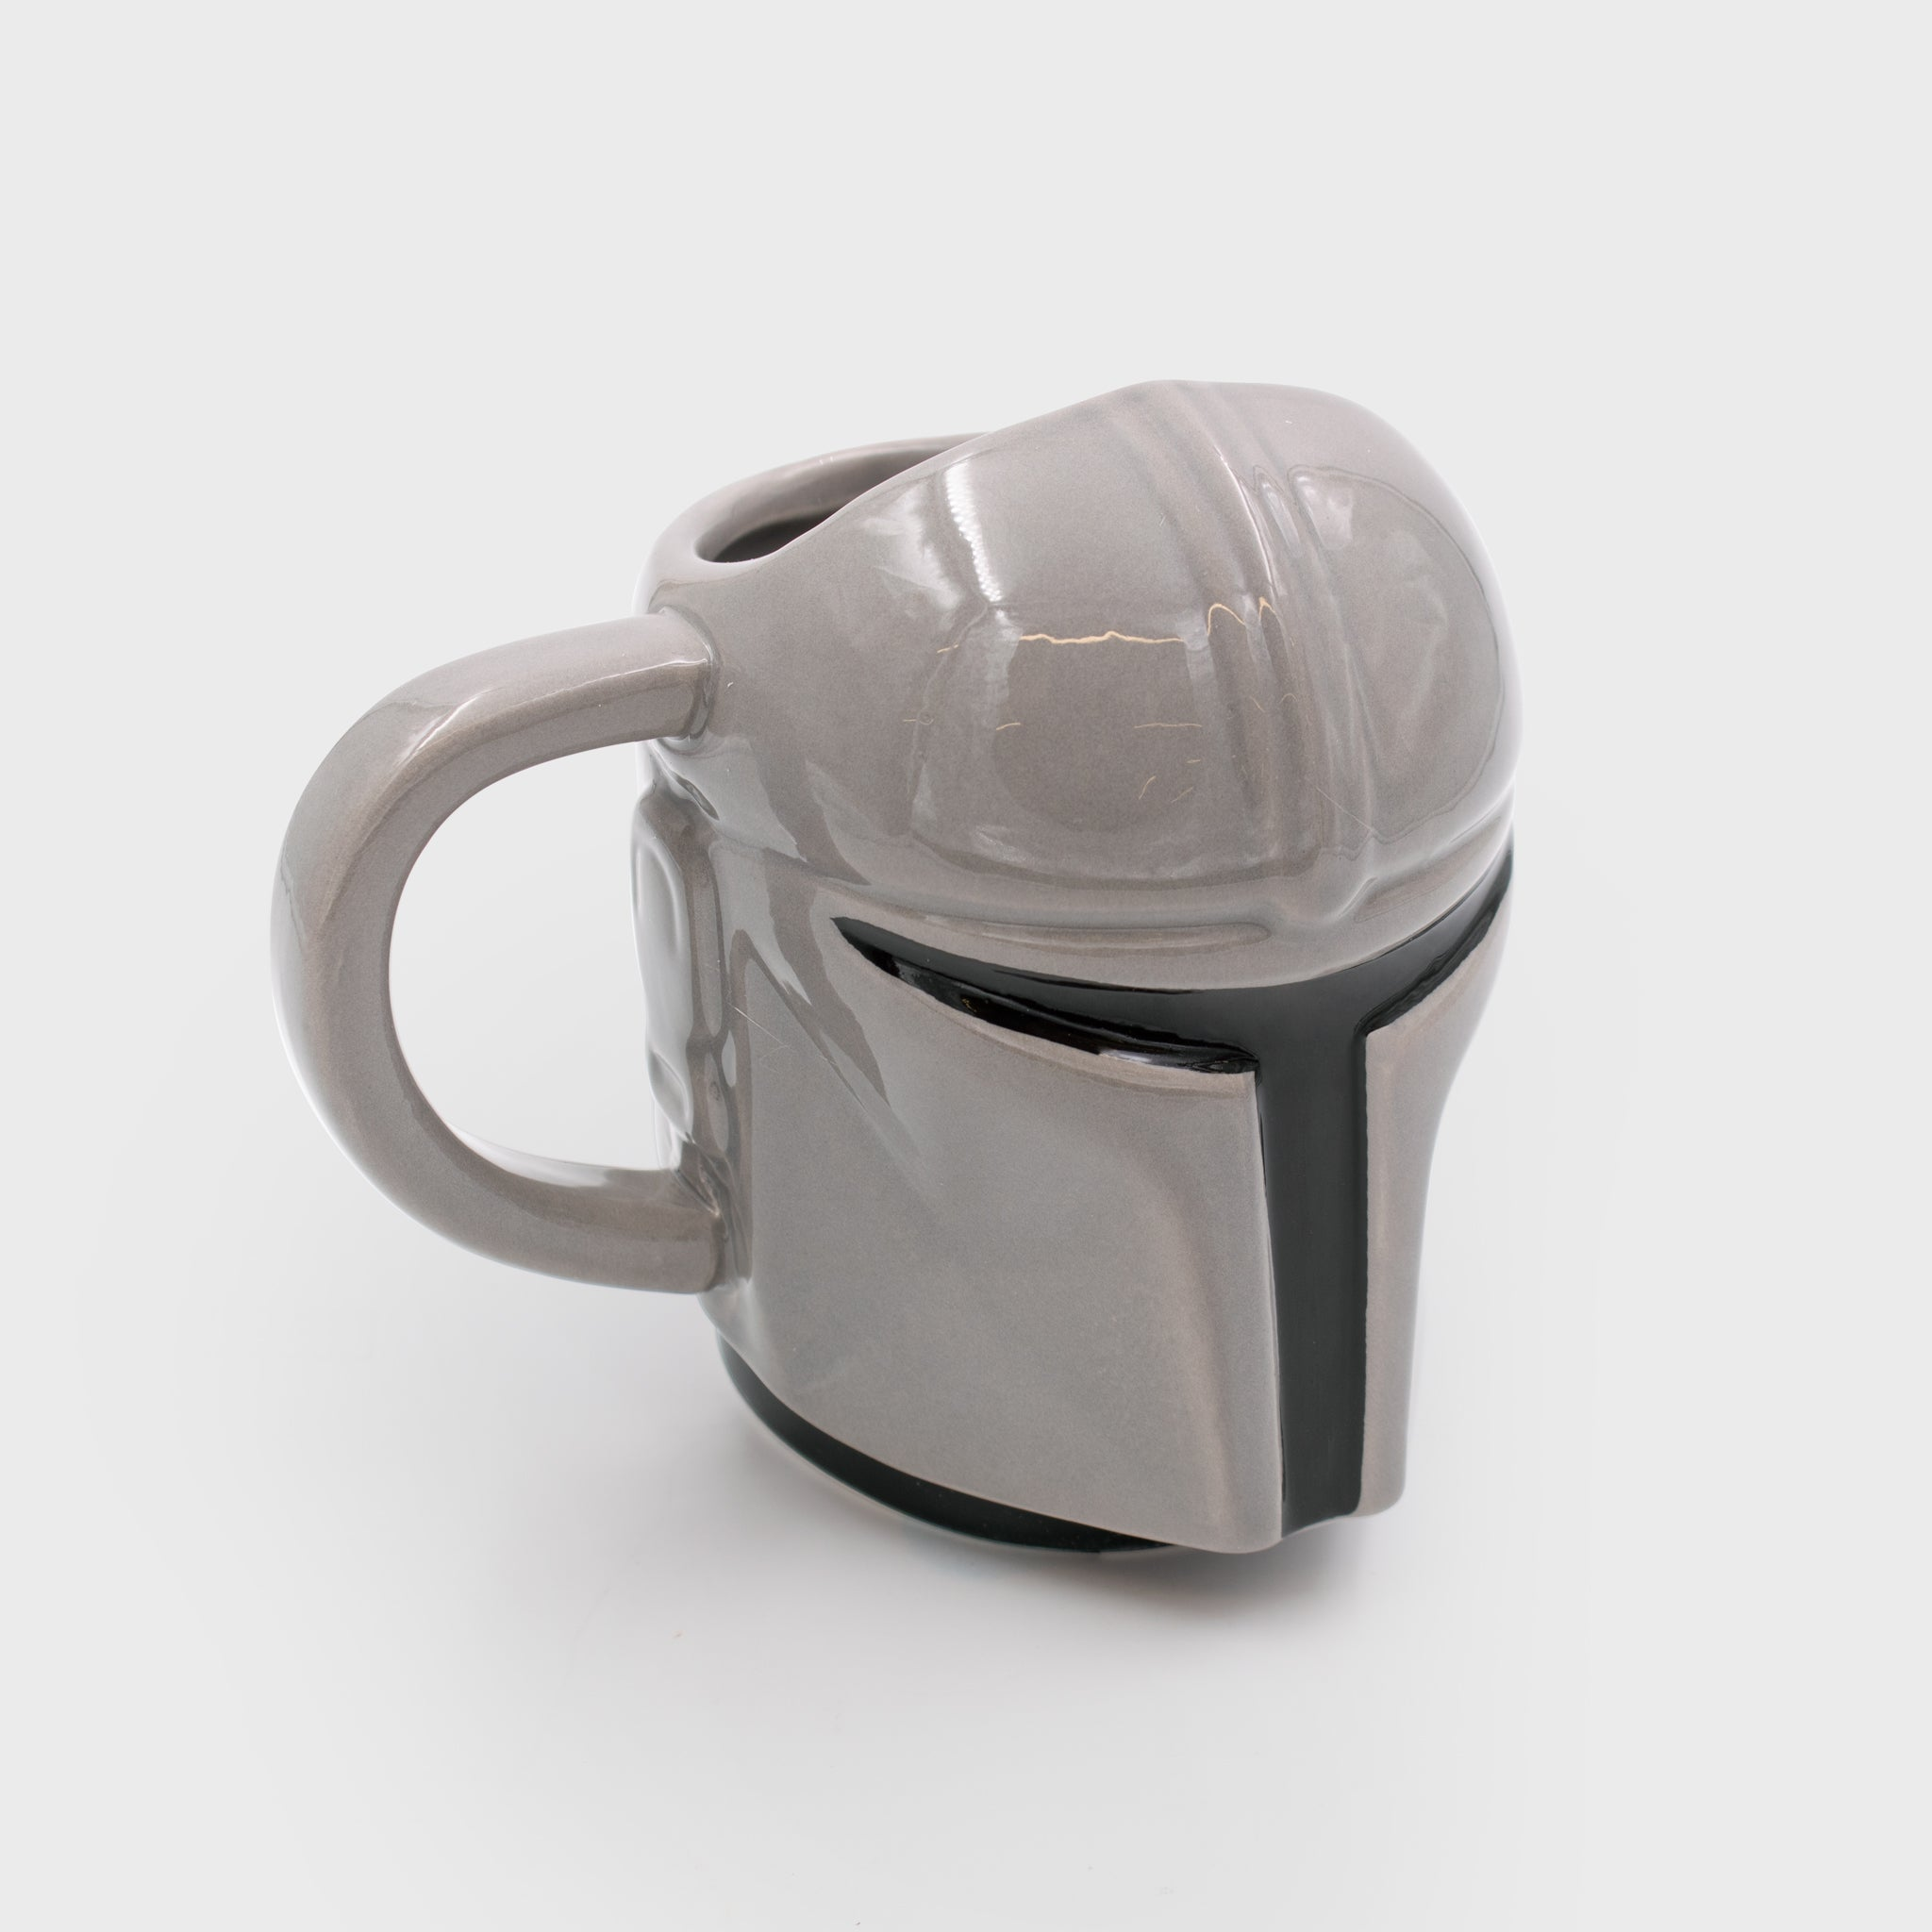 the mandalorian star wars baby yoda the child collector's box collectibles mug home decor drinkware culturefly